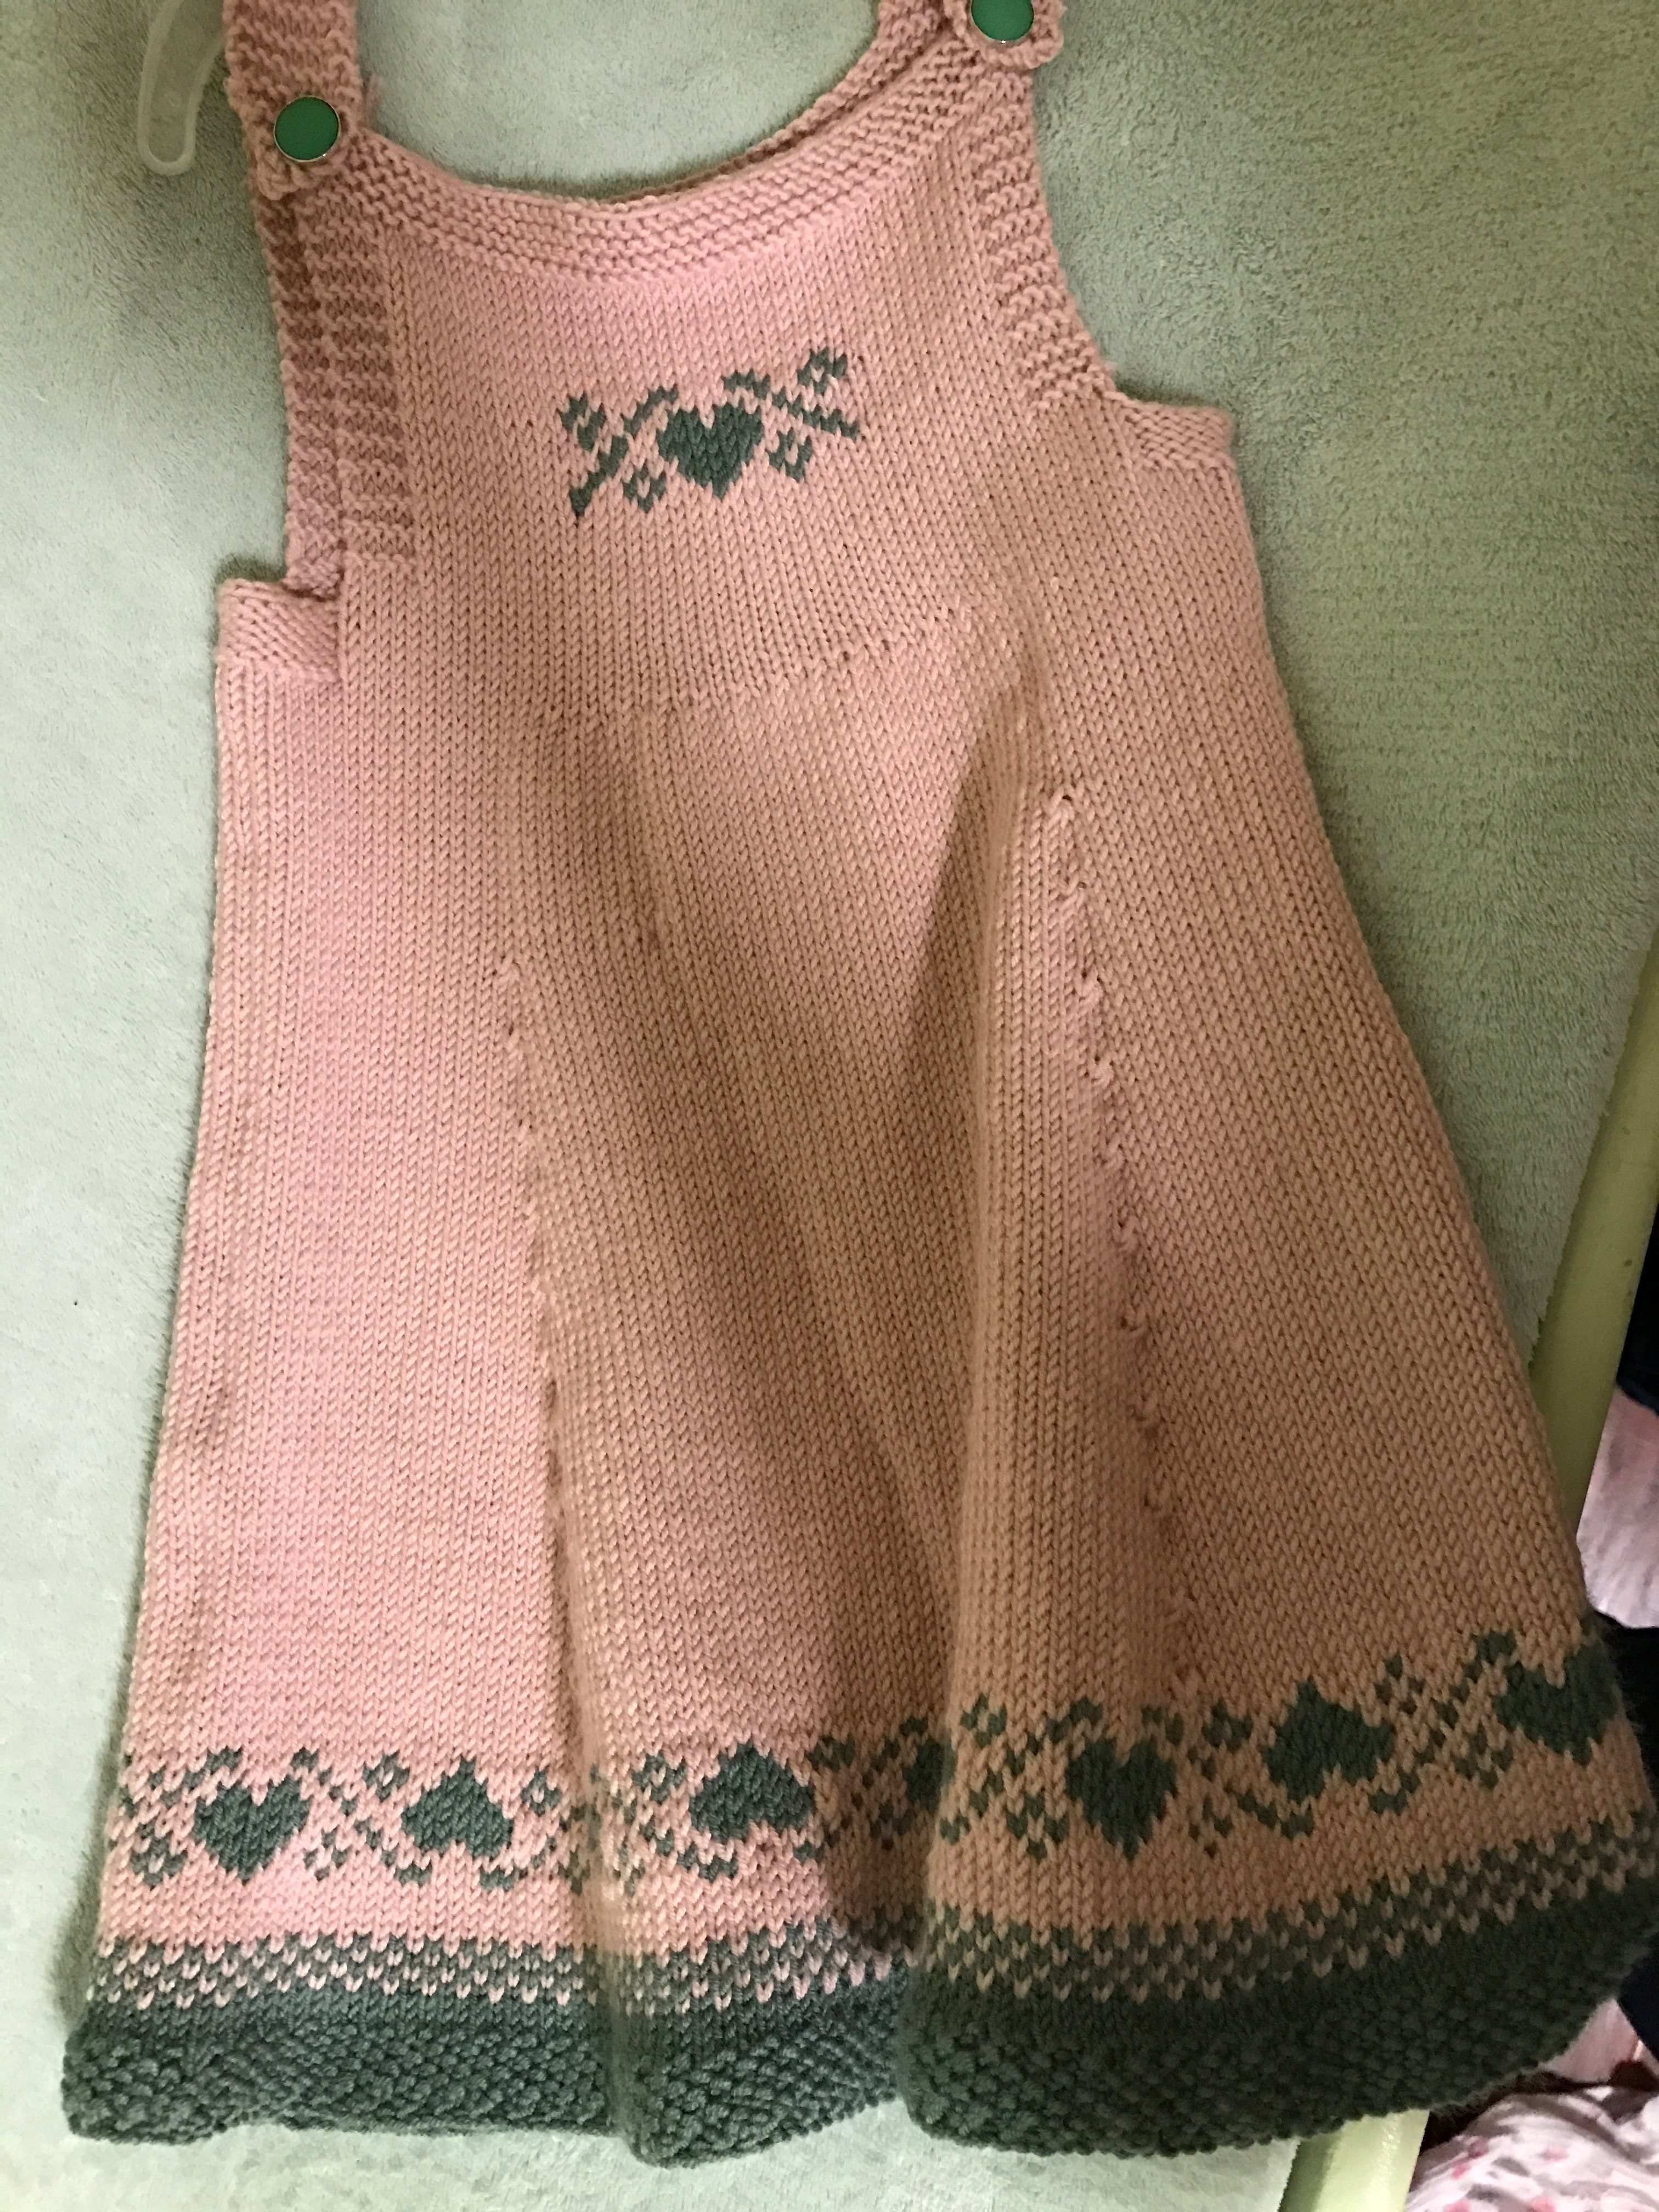 ba0ca945ad18 Maddie s Love U Forever pinafore knitting project by Denise B ...